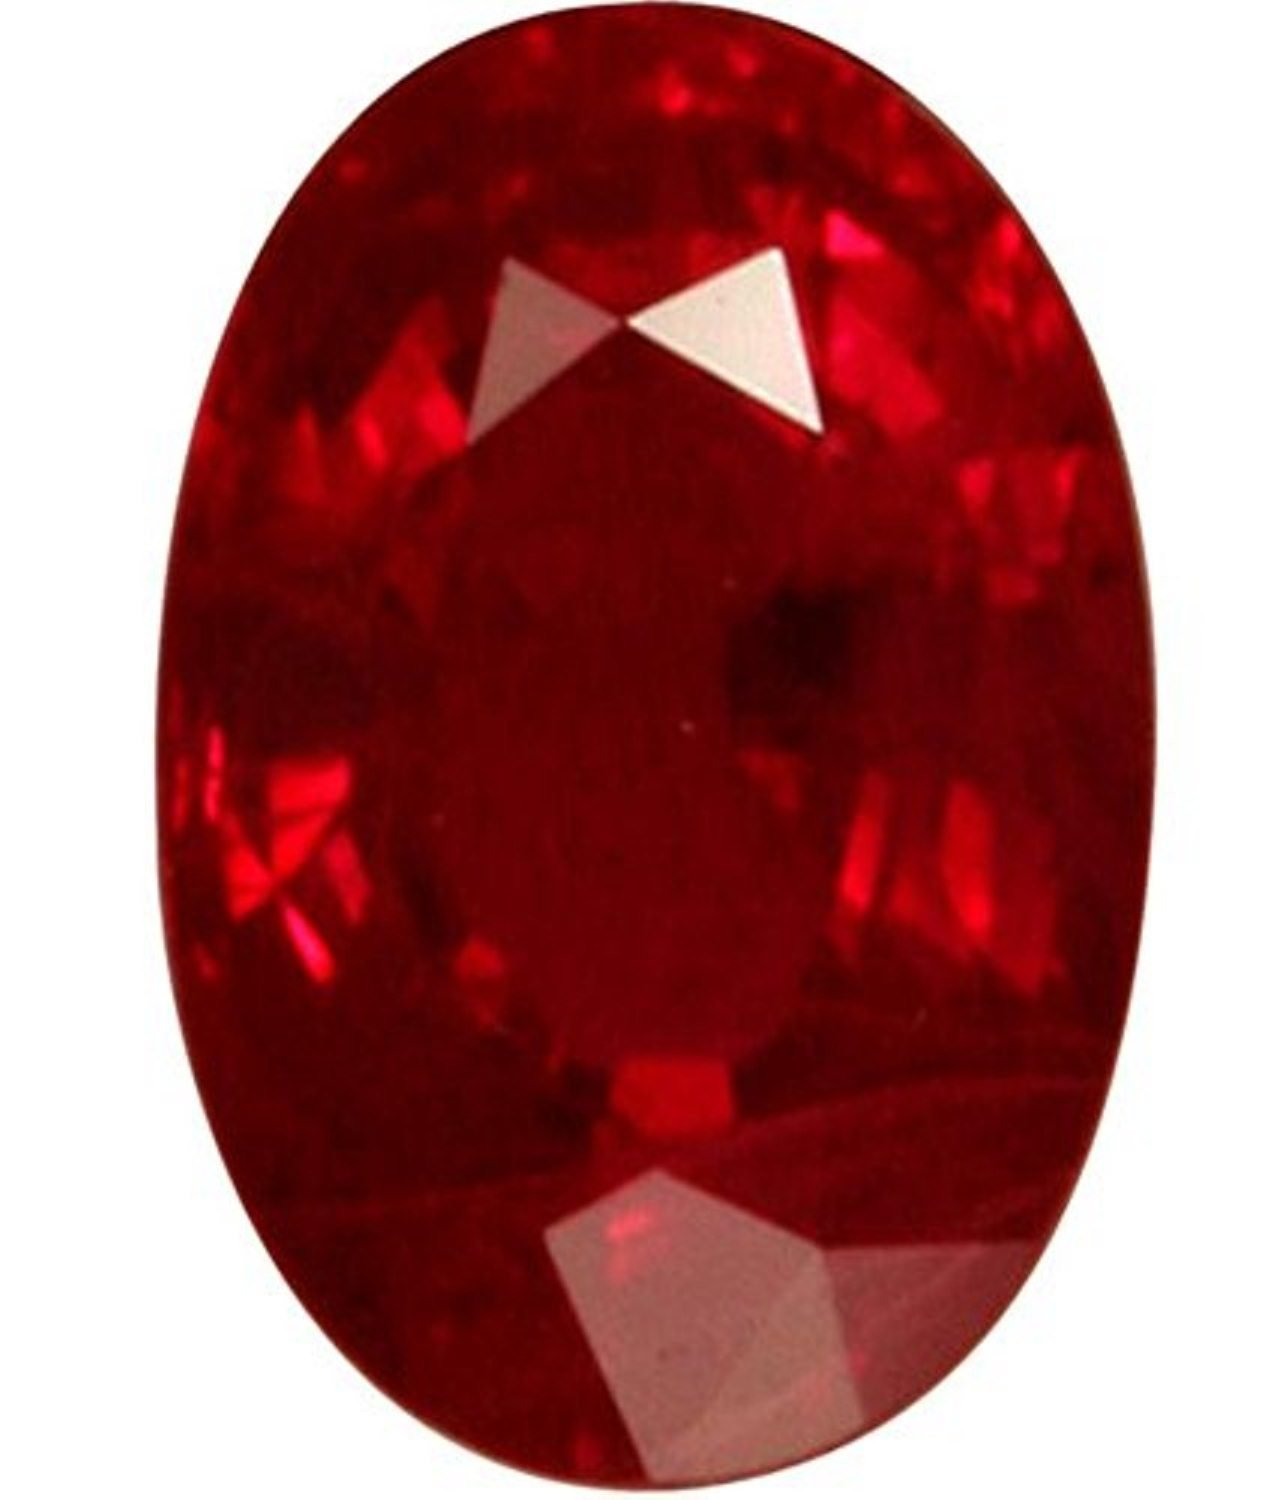 Ruby/Manik 10.25 Ratti Lab Certified Top Quality Natural Ruby Gemstone Astrological Purpose By GEMS HUB